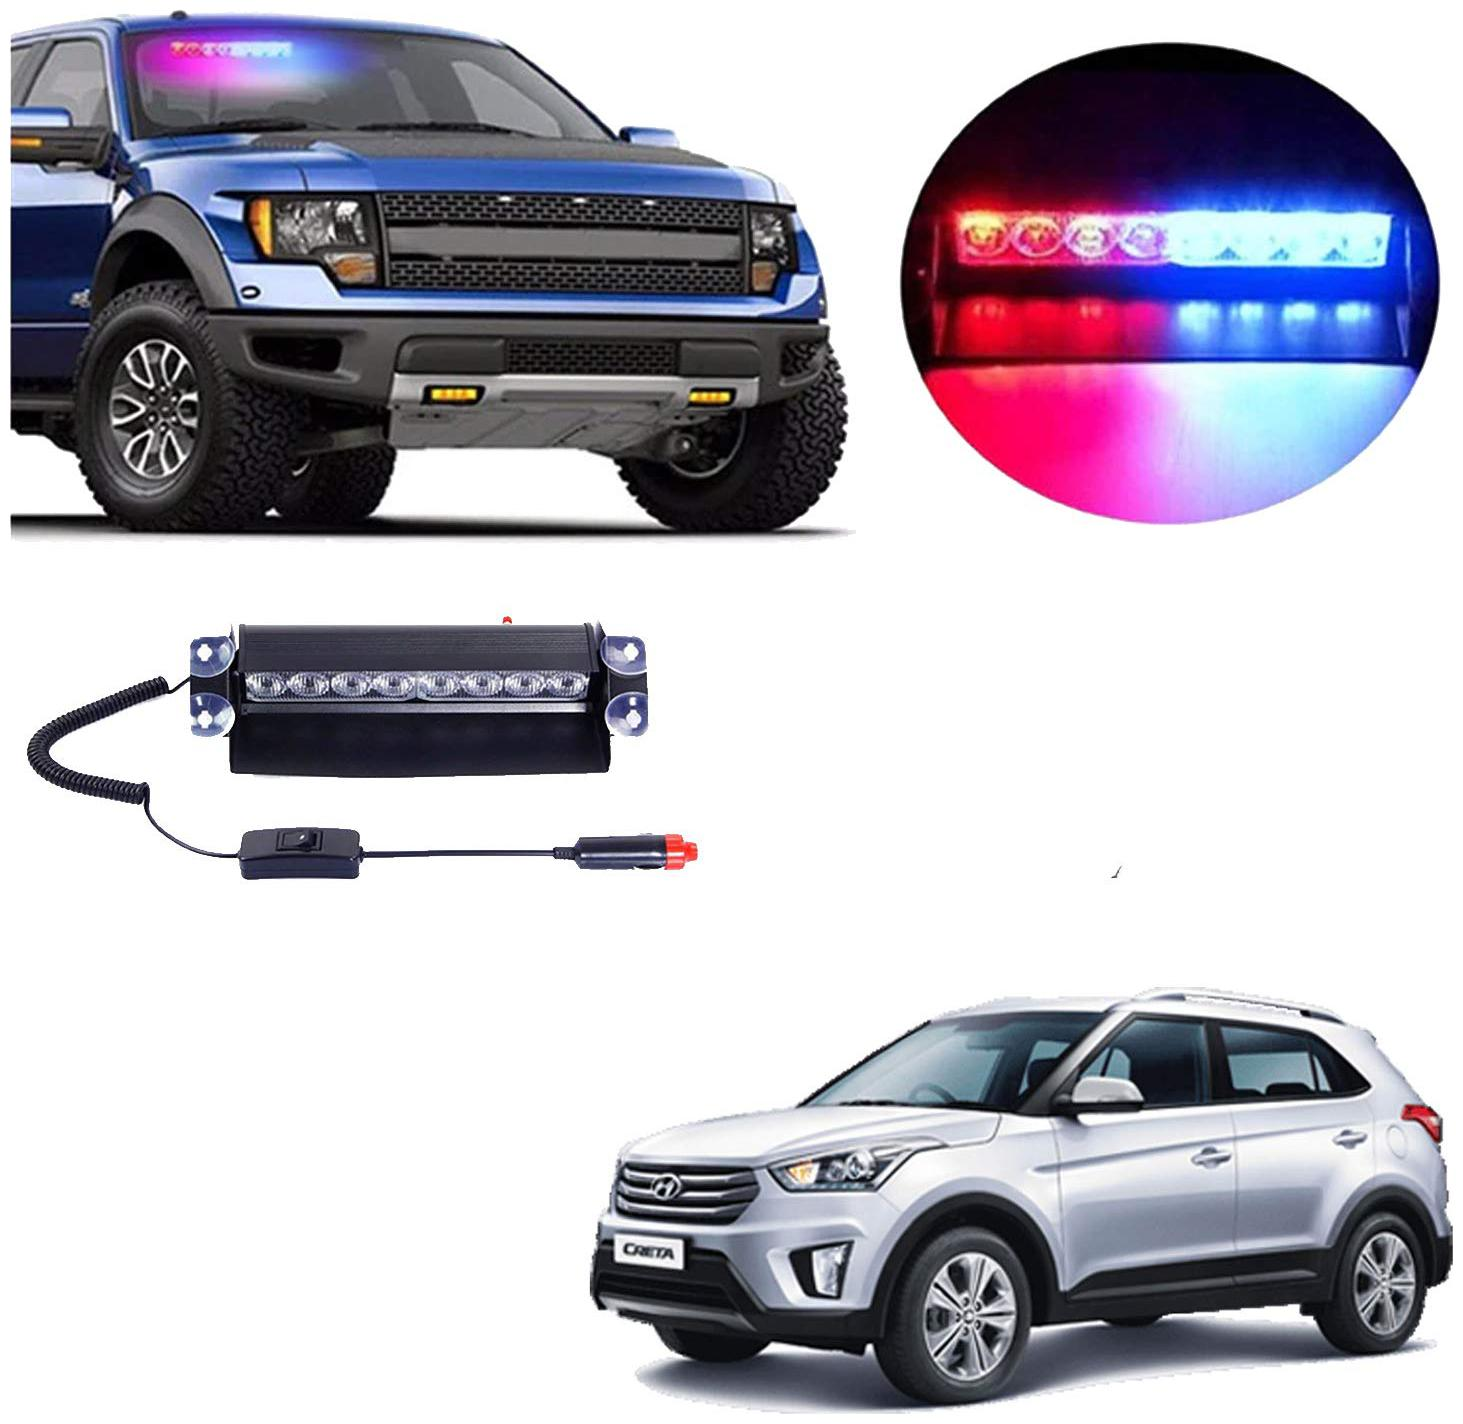 https://assetscdn1.paytm.com/images/catalog/product/A/AU/AUTCARTRONICS-8THE-2243817836628/1606572419441_0..jpg